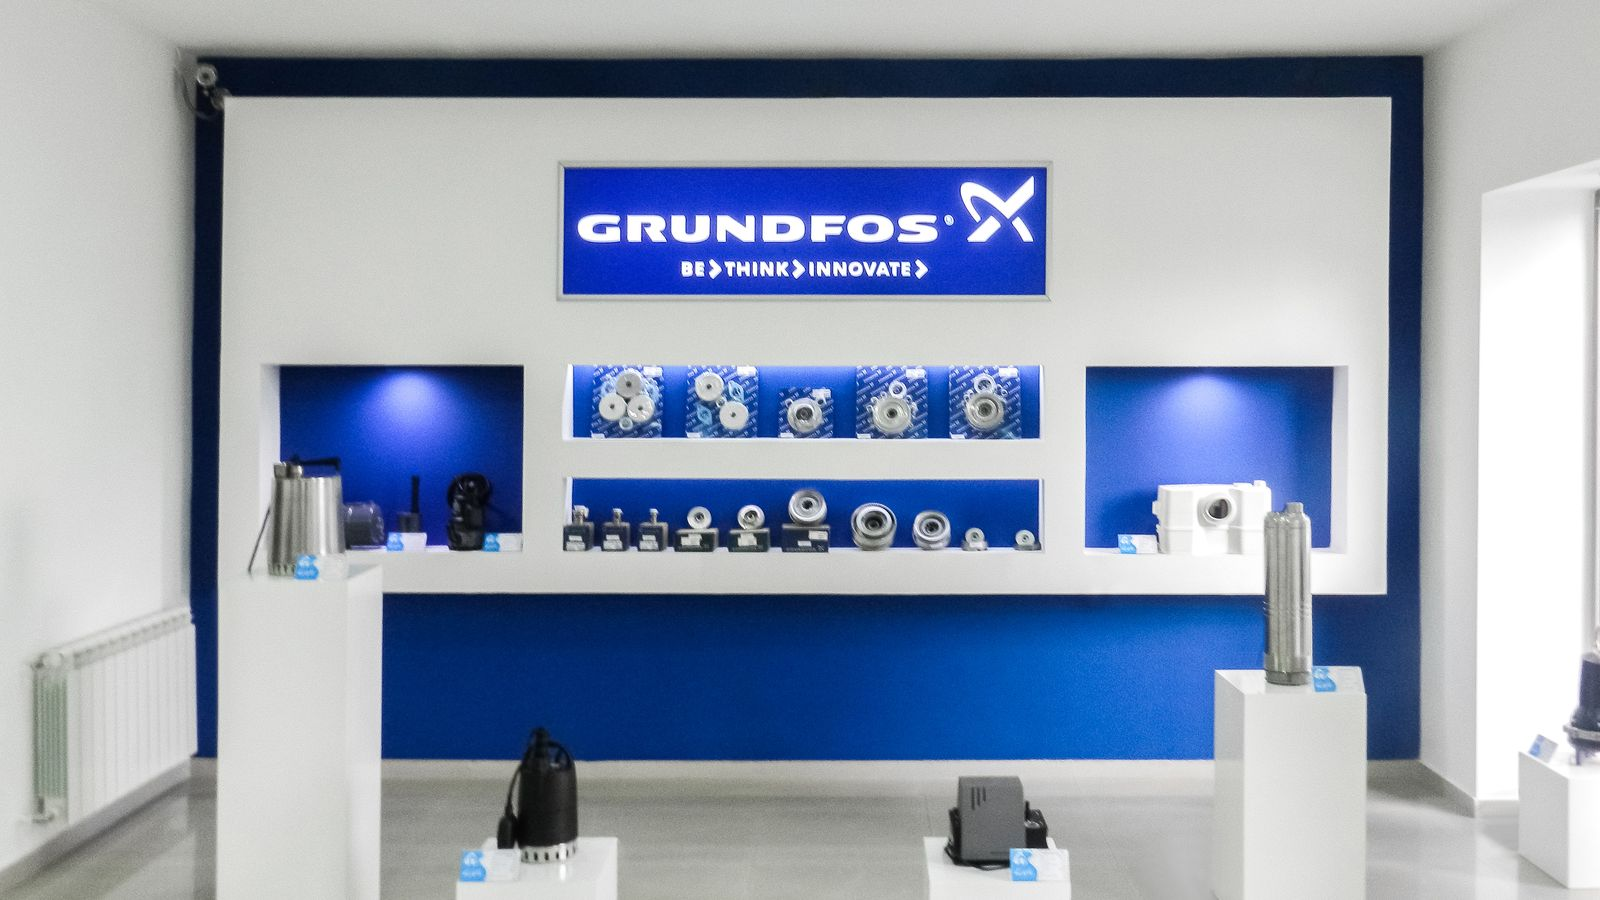 Grundfos illuminated interior signage with the company name, logo and slogan made of acrylic and aluminum for store branding